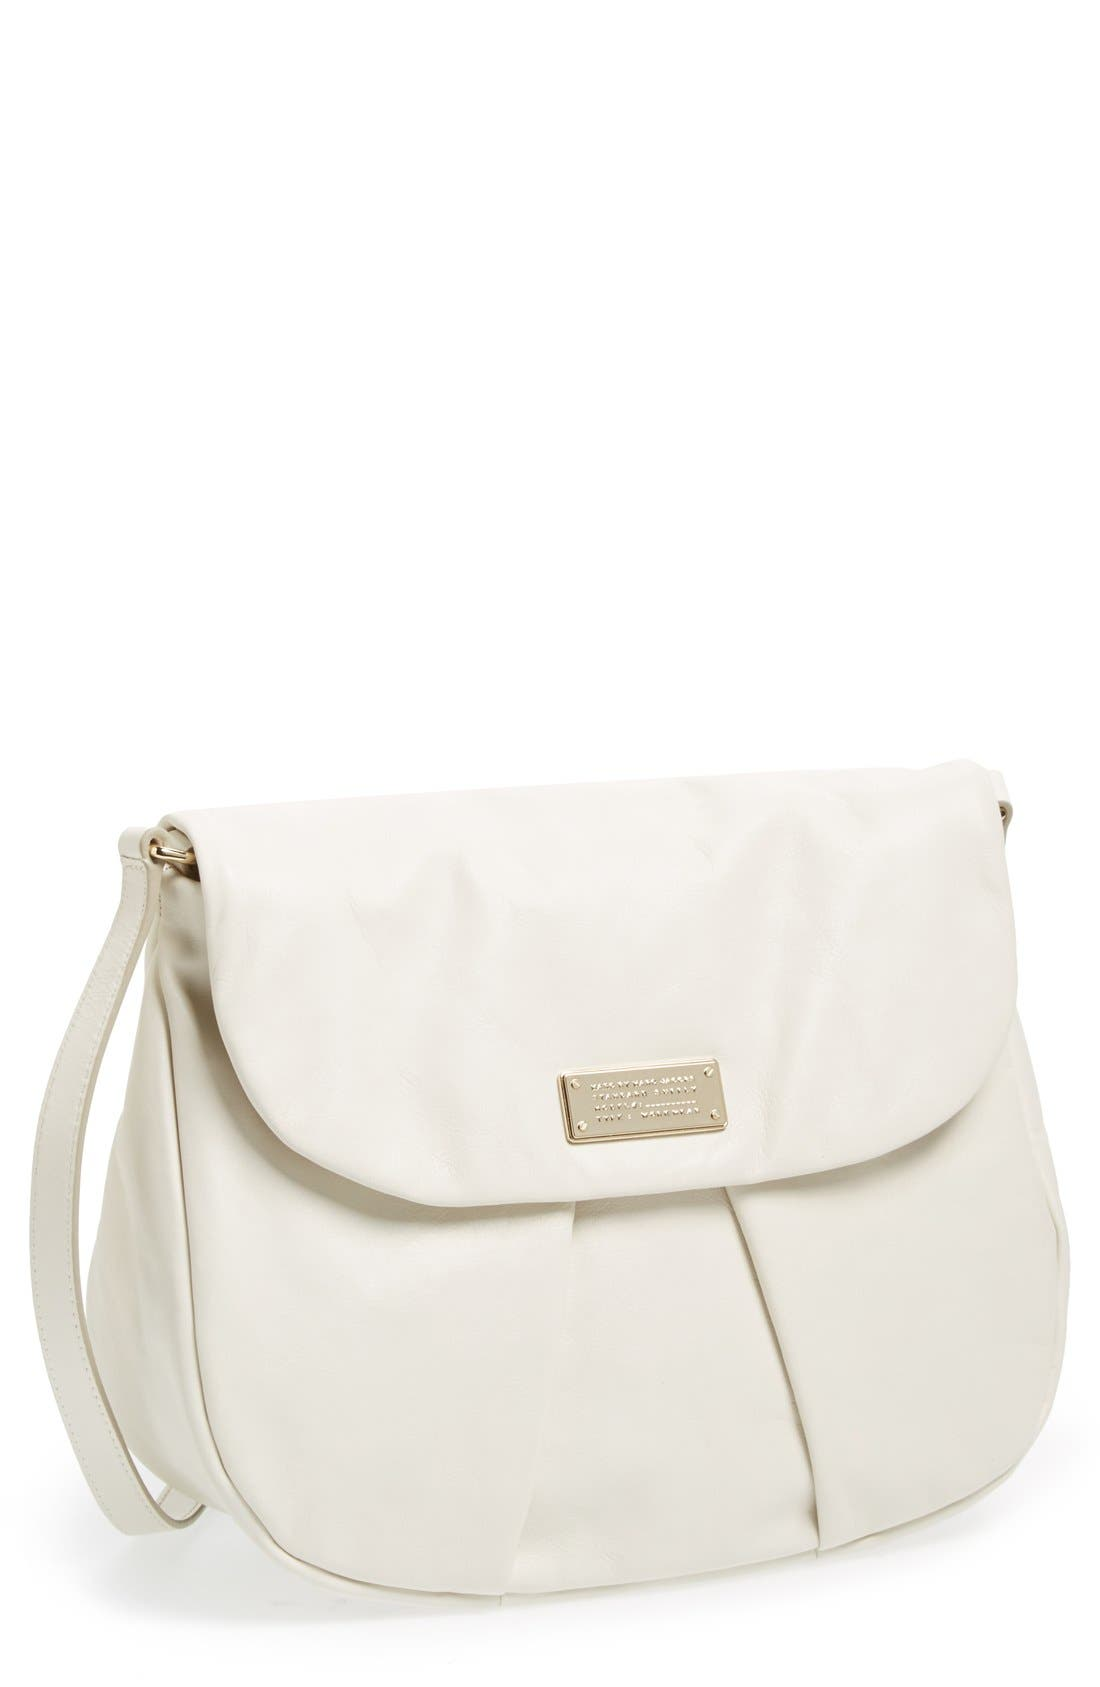 Main Image - MARC BY MARC JACOBS 'Machive' Crossbody Bag